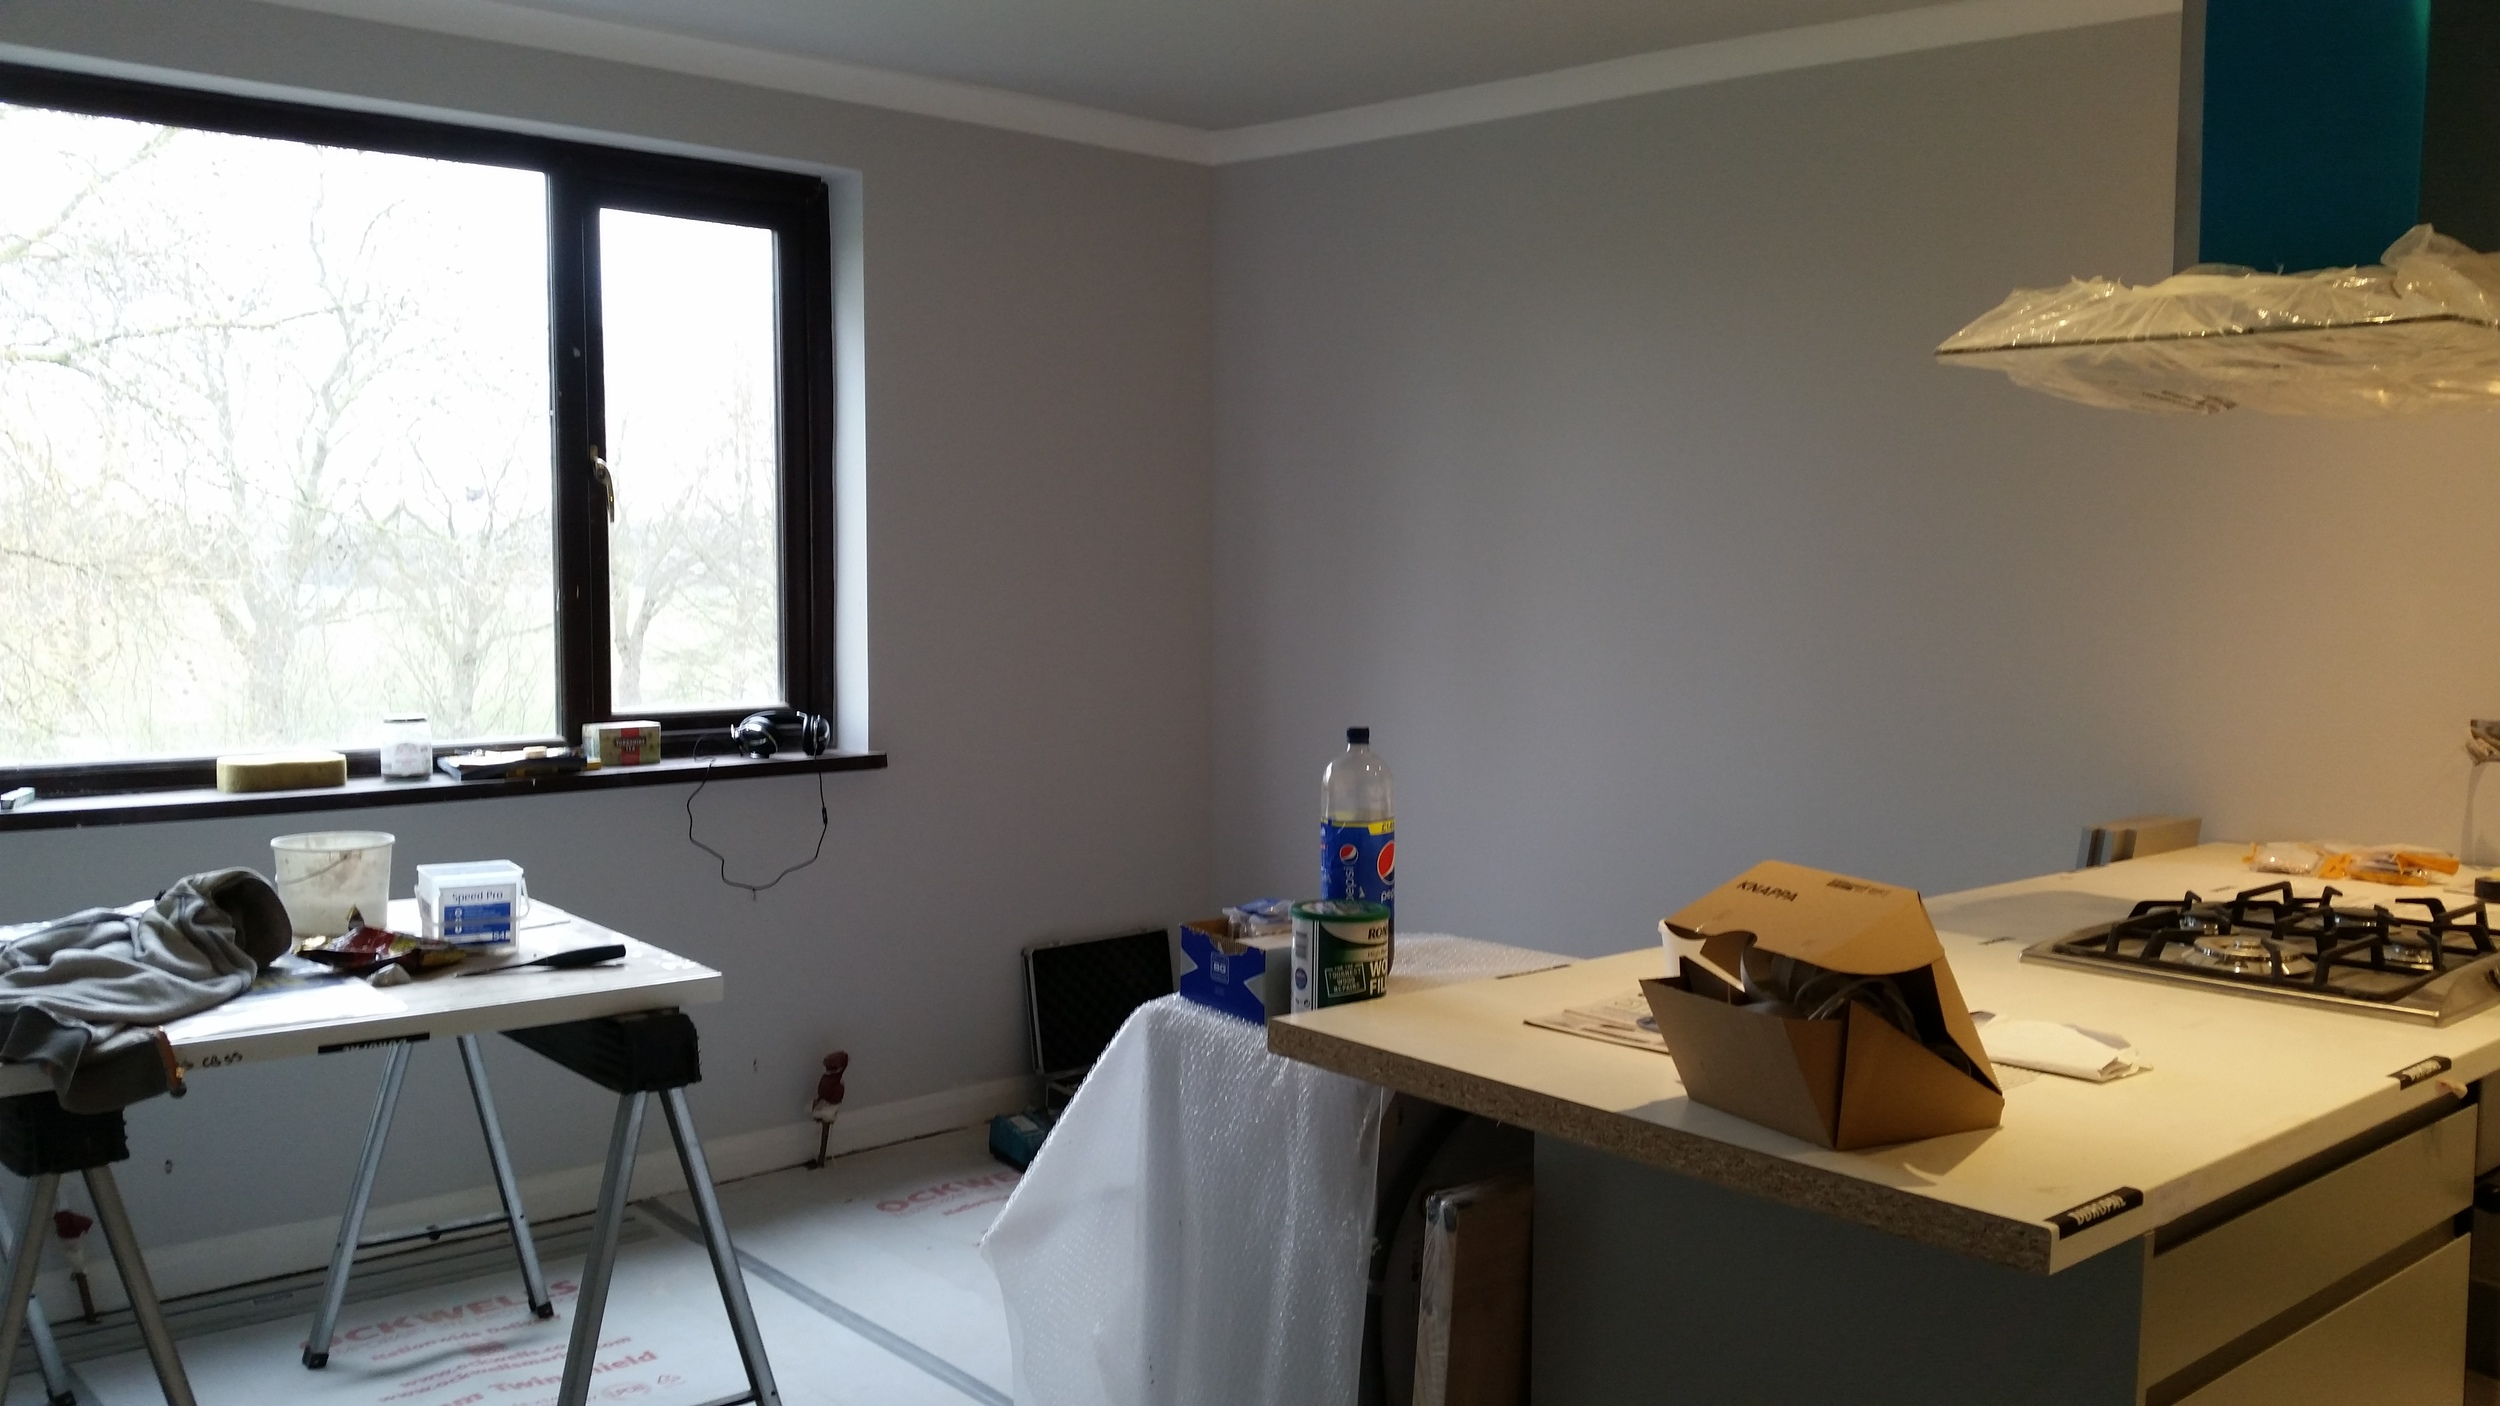 Walls painted